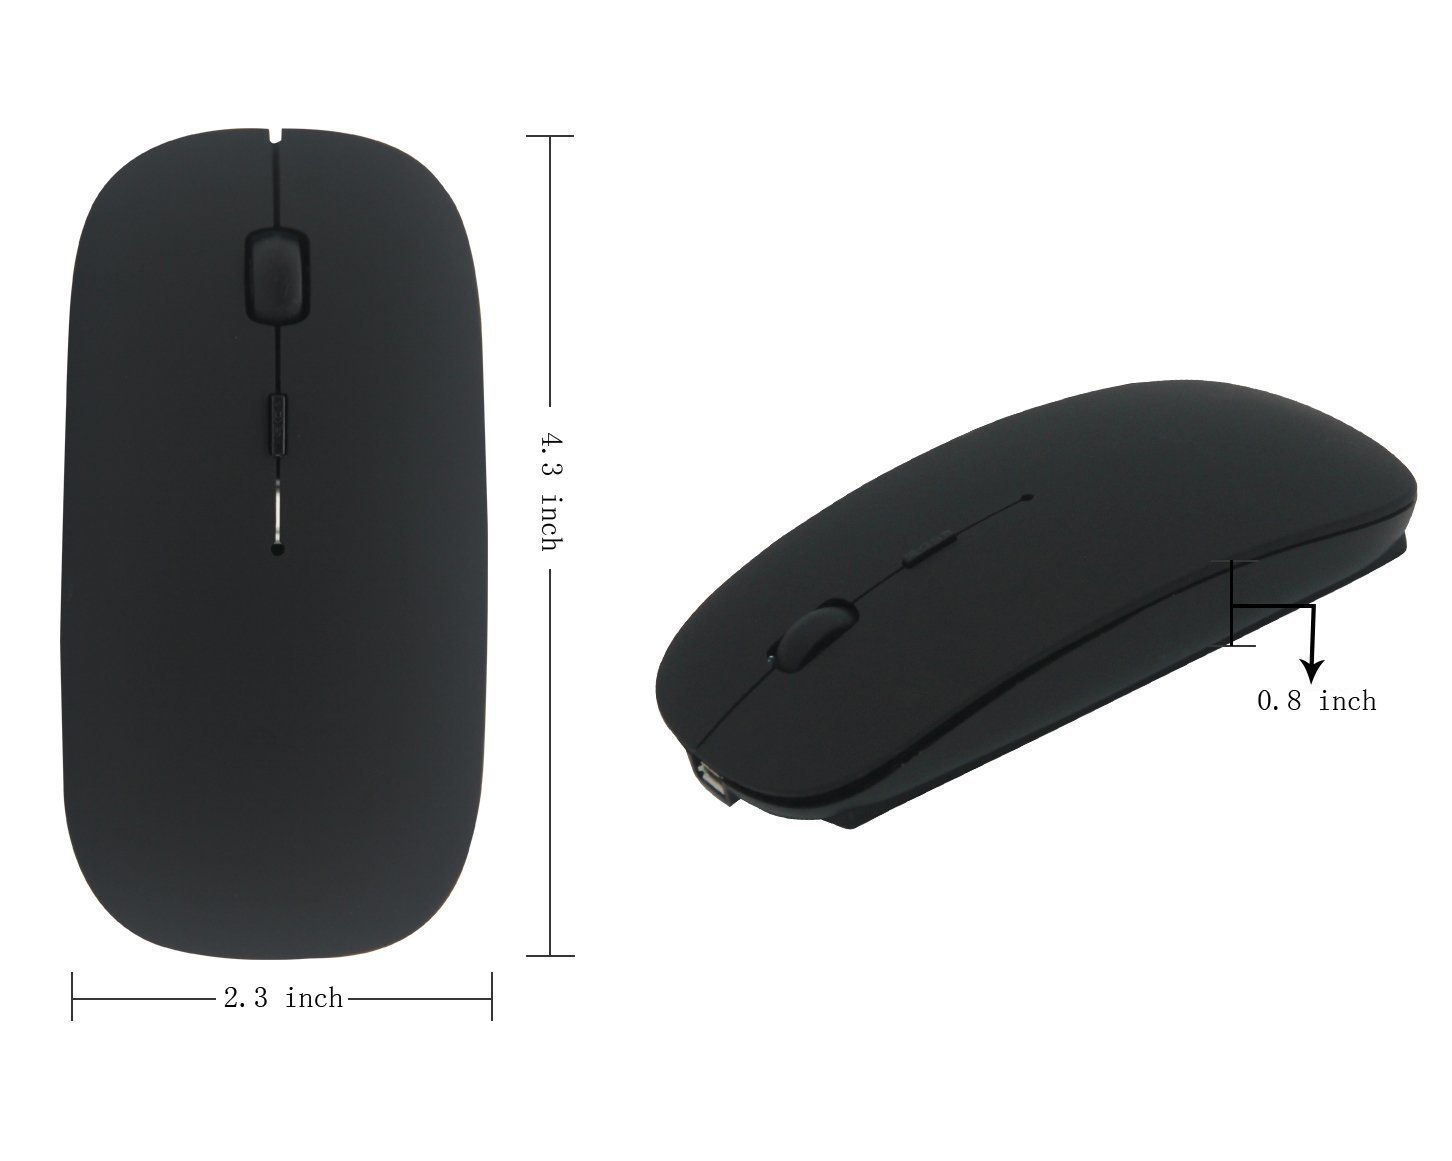 Wireless Mouse,BOOMER VIVI Rechargeable Portable Bluetooth 3.0 Slim Mice 3 Level Adjustable DPI Power-saving Model Built-in Battery with USB cable for PC Laptop Windows/Android Tablet,Mac by BOOMER VIVI (Image #8)